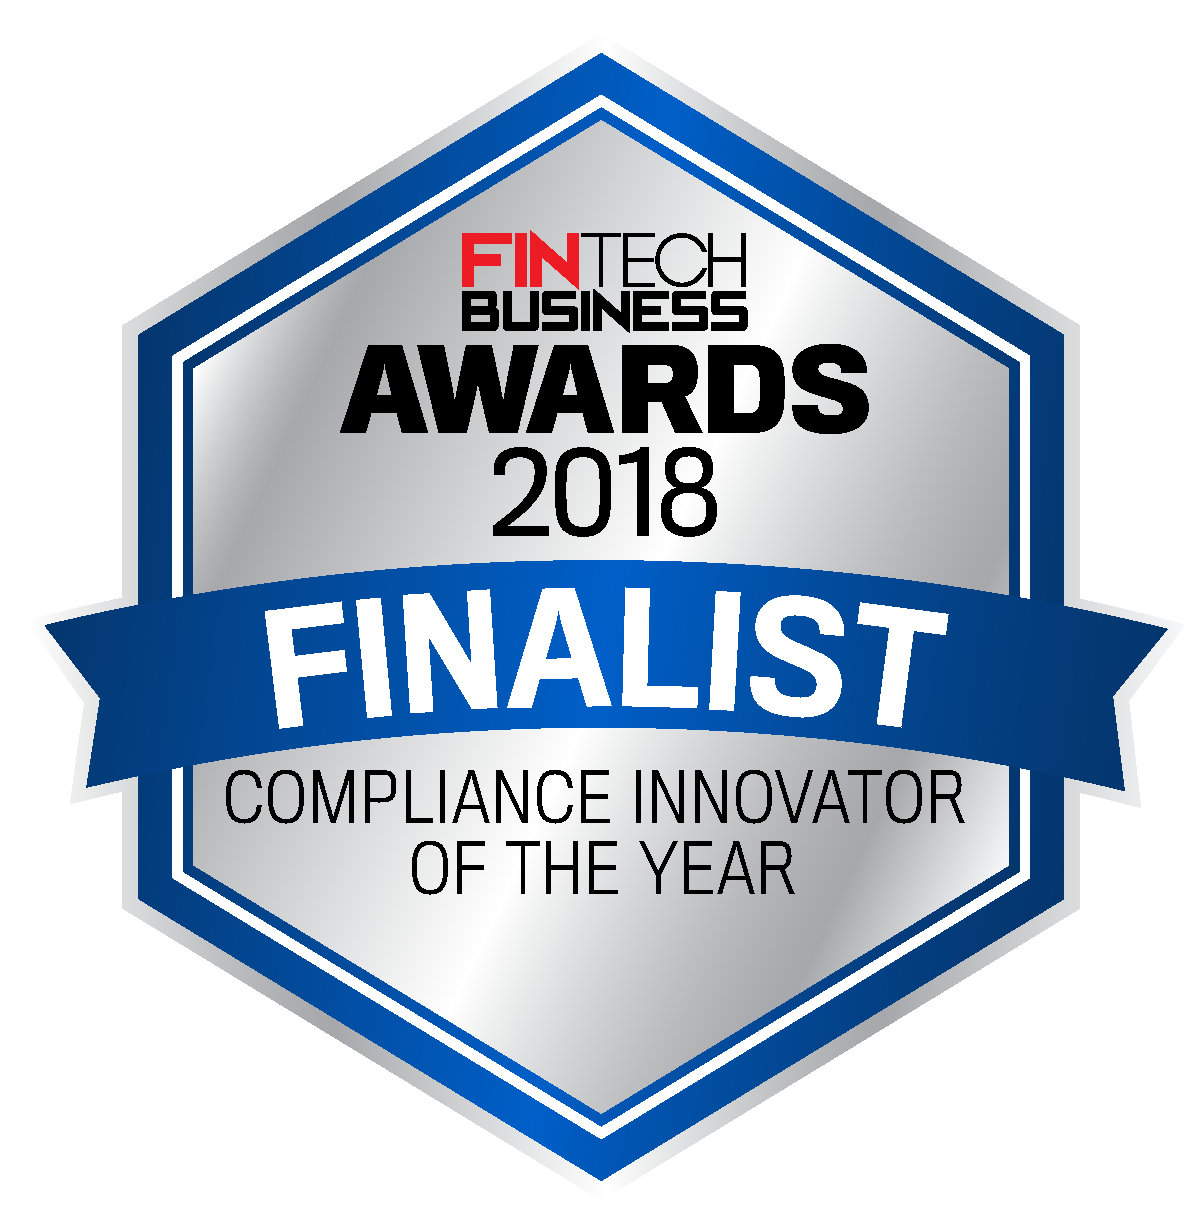 Finalist_Compliance Innovator of the Year (1).png